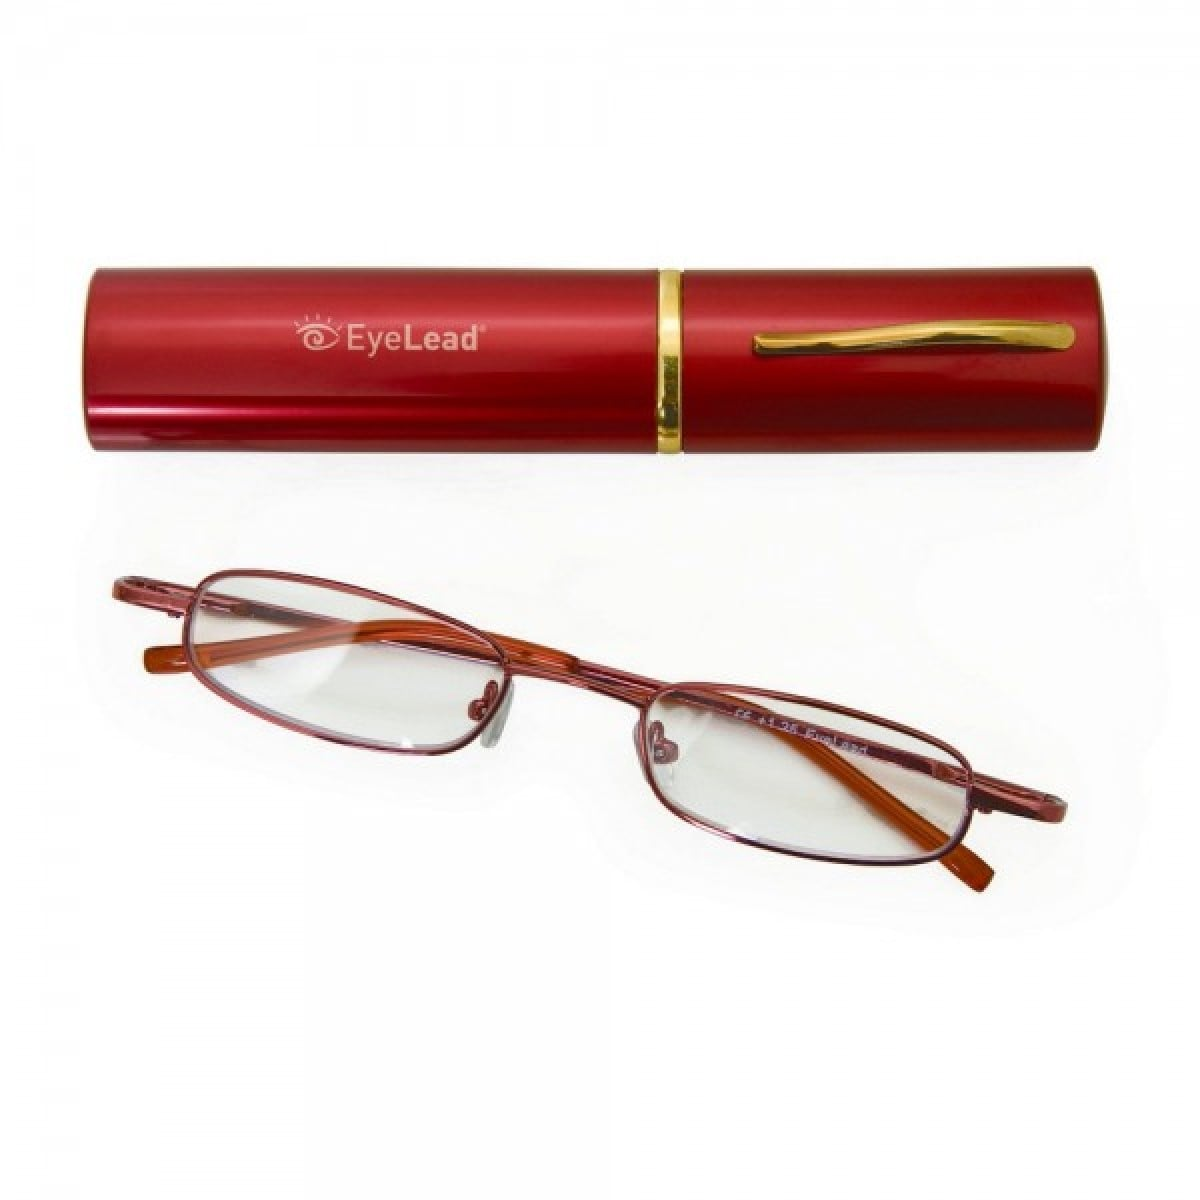 Vitorgan EyeLead Pocket - Reading Glasses pocket, with case . With flexible arm & durable frame. Color Red, 1 piece